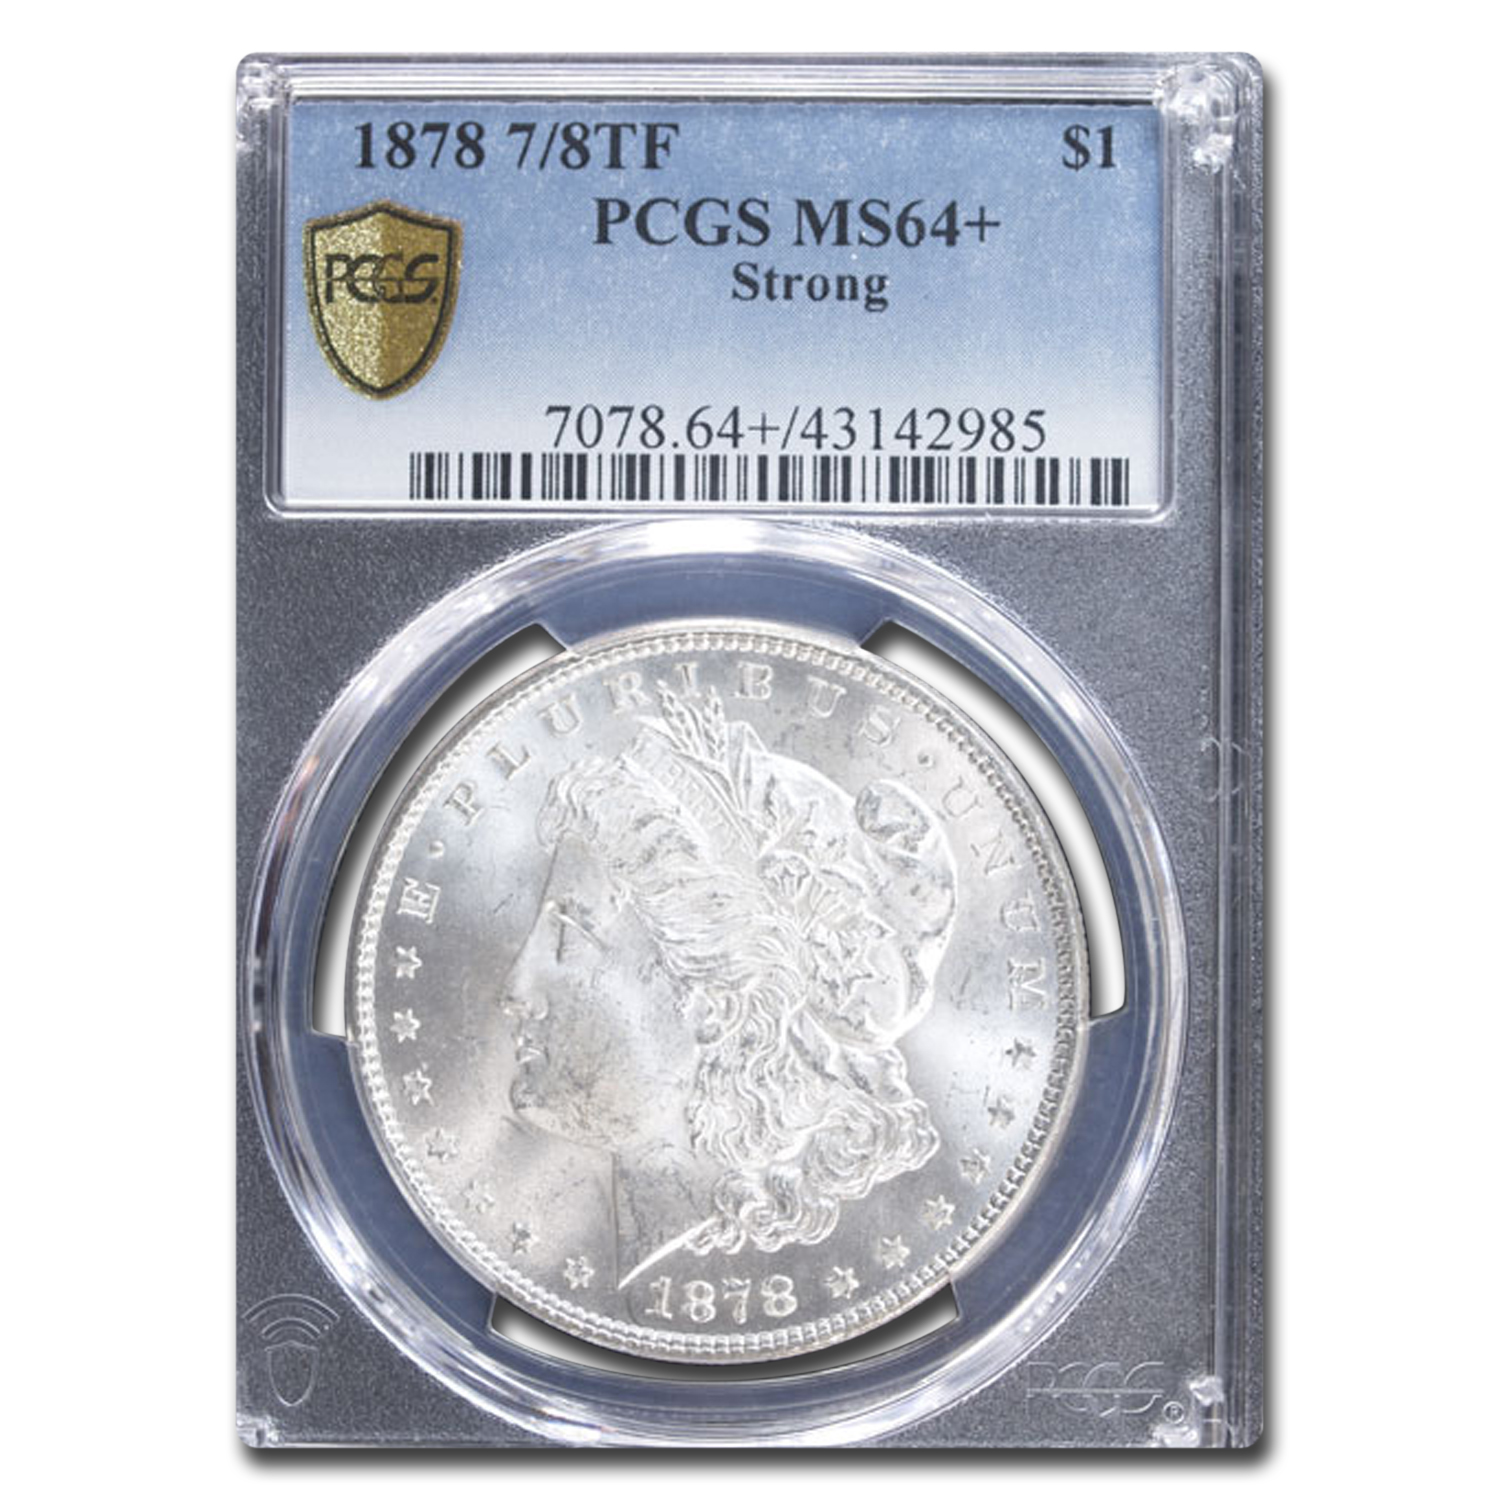 1878 Morgan Dollar 7/8 TF Strong MS-64+ Plus PCGS